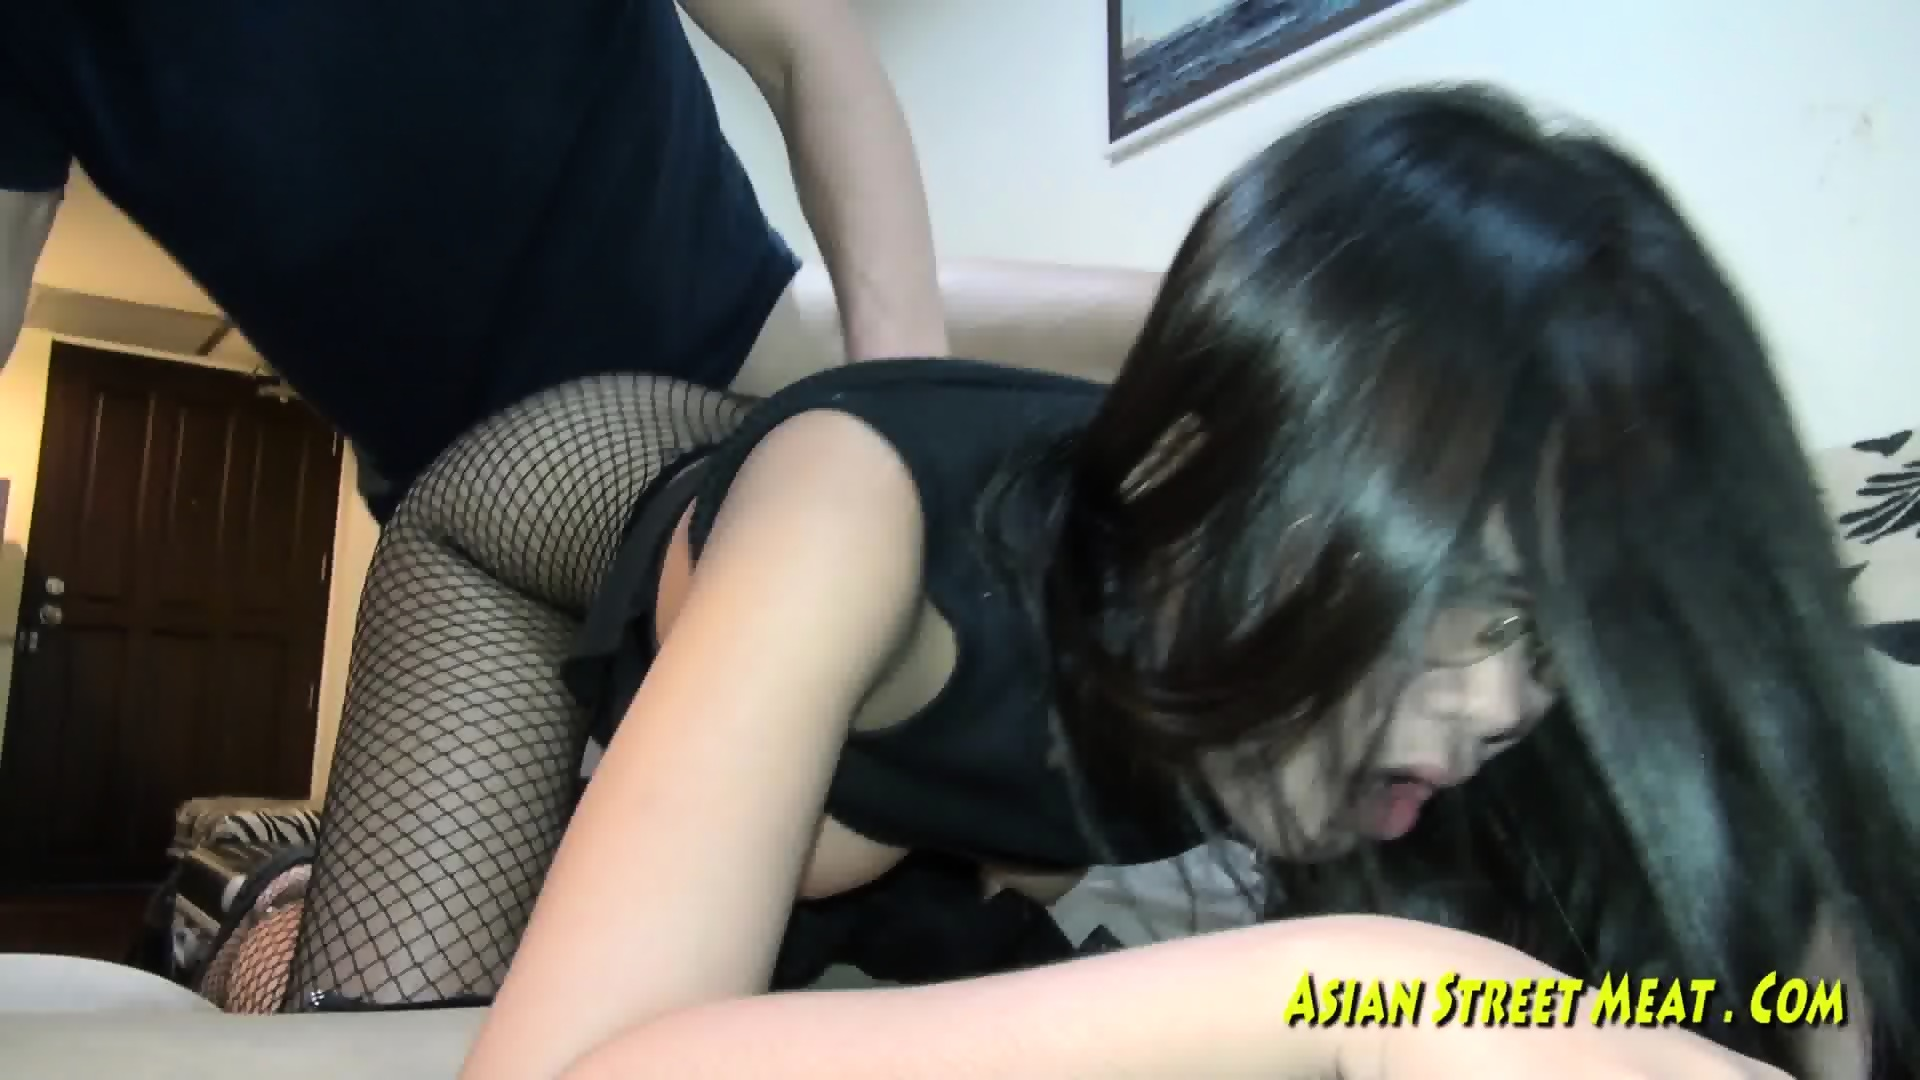 Her body ASIAN STREET MEAT PORN